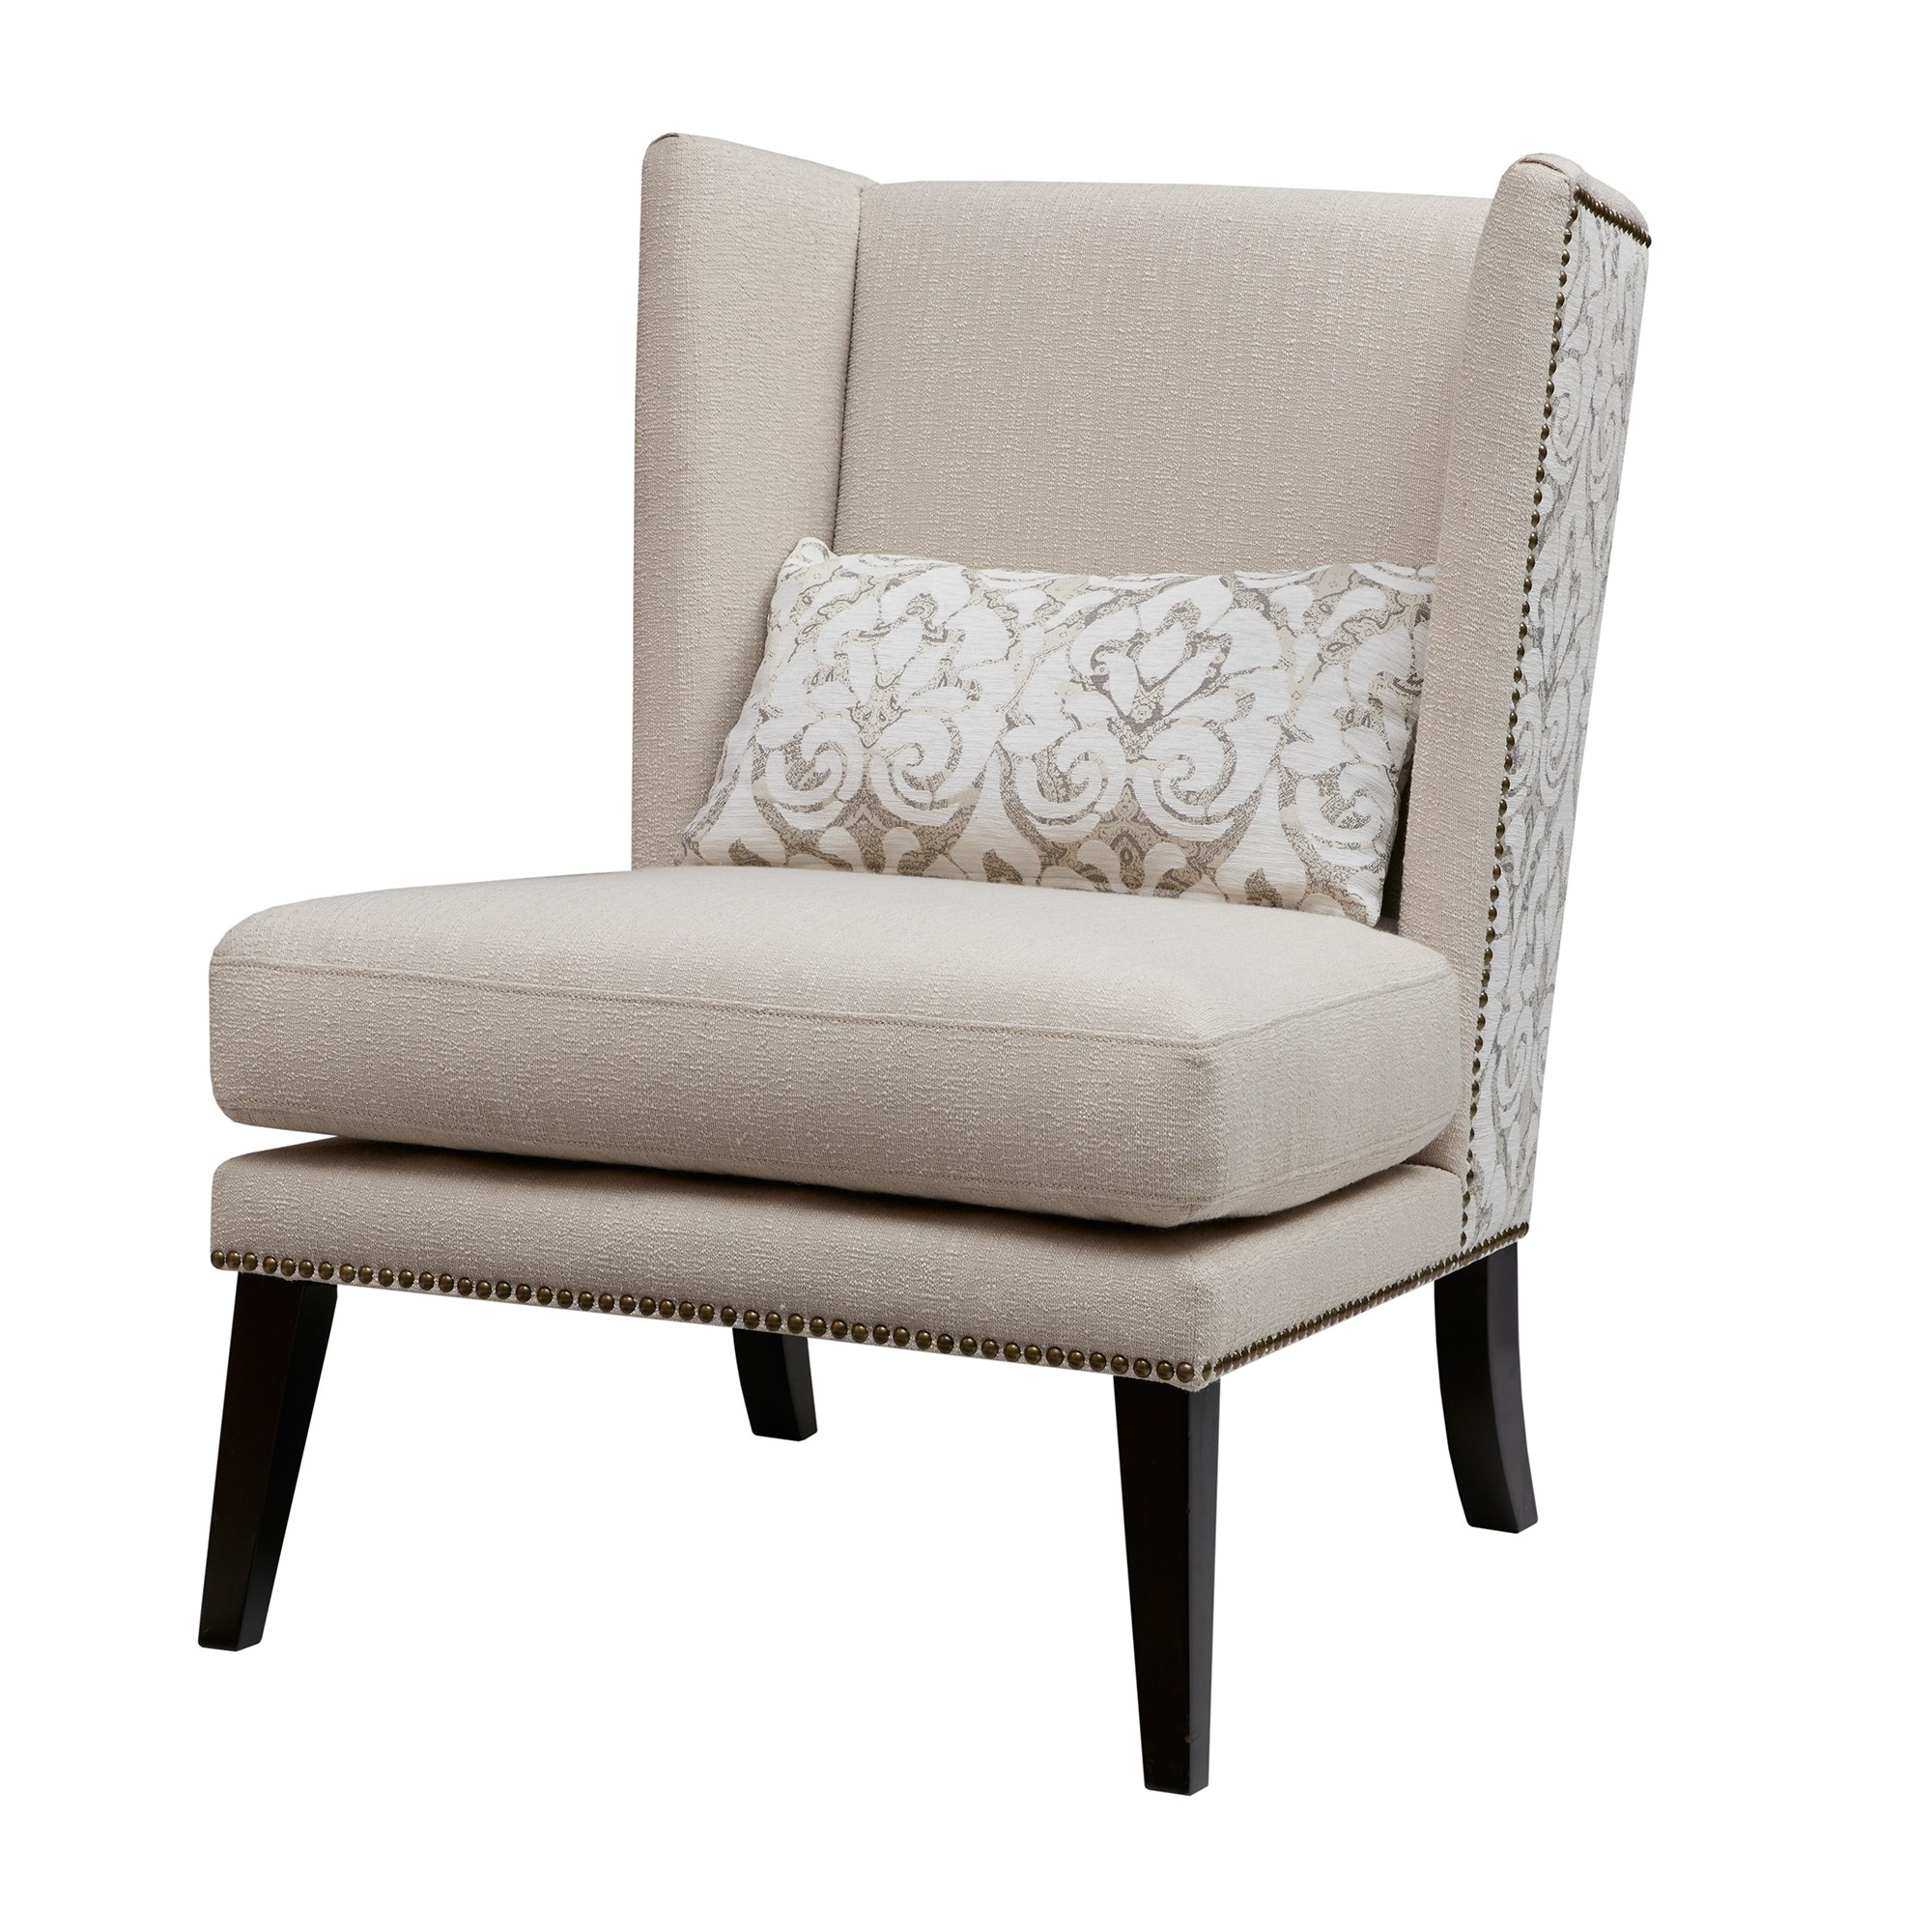 Accent chairs jla home tan tan multi armless accent